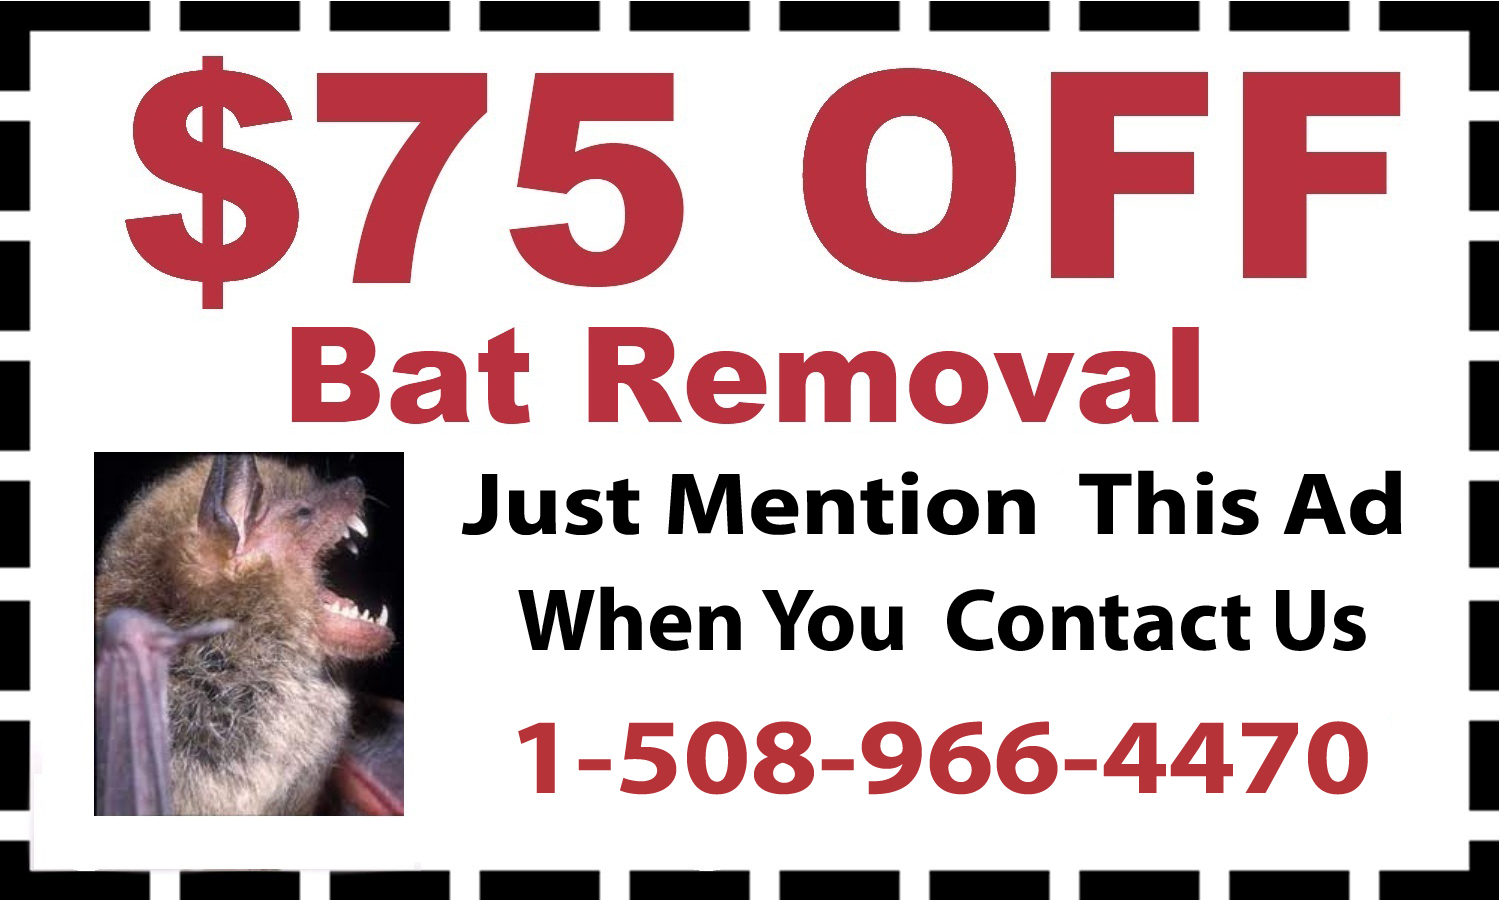 Bat Removal Wellesley, MA